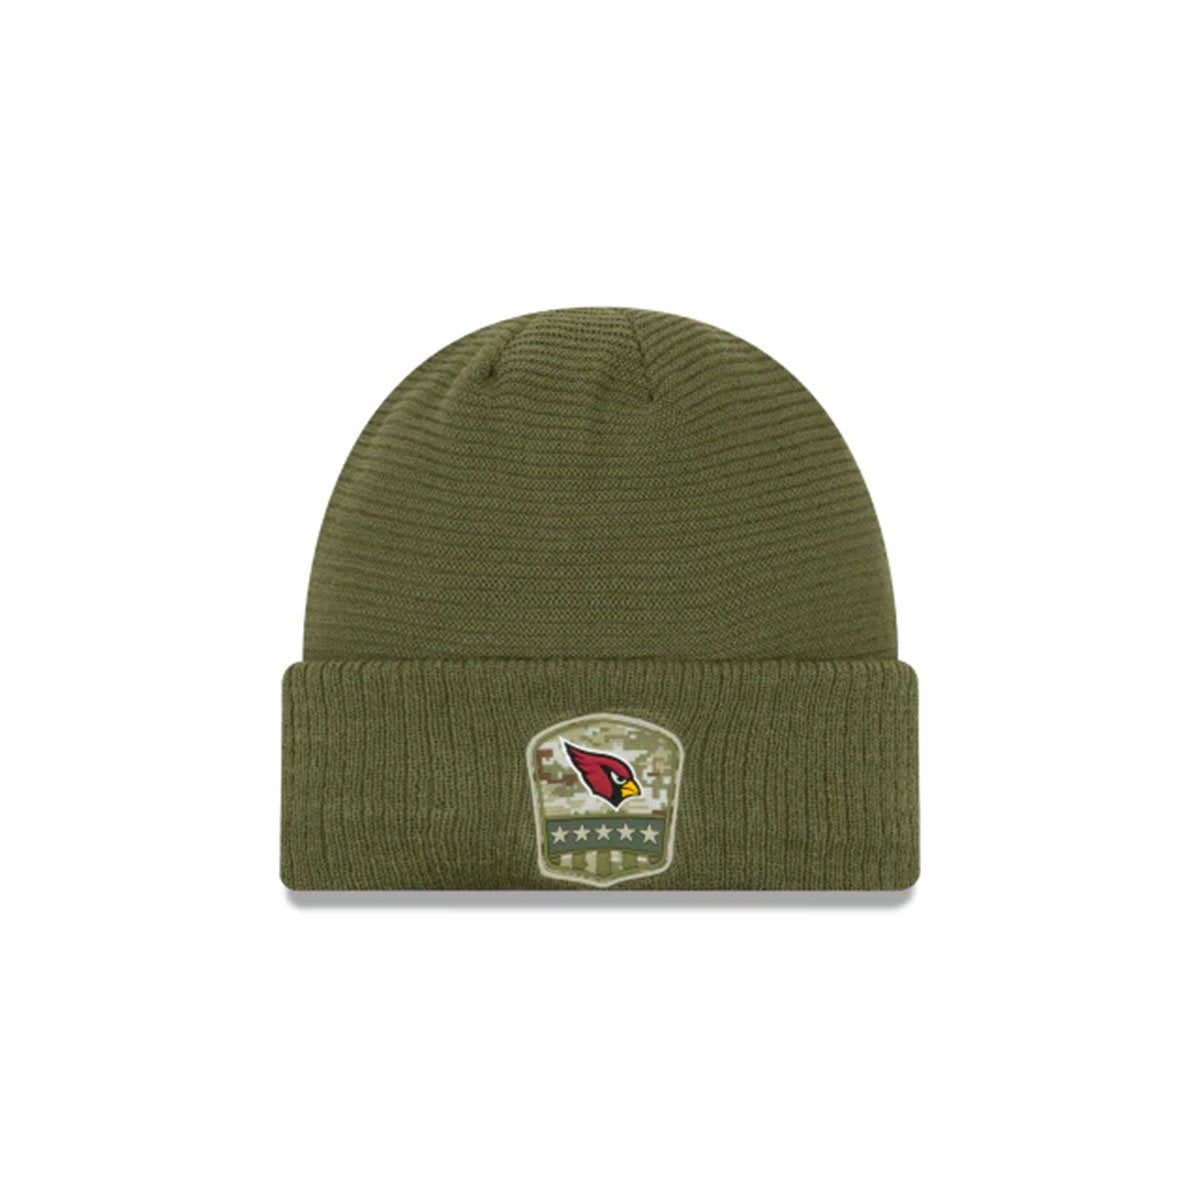 ARIZONA CARDINALS SALUTE TO SERVICE CUFF KNIT GREEN/RED